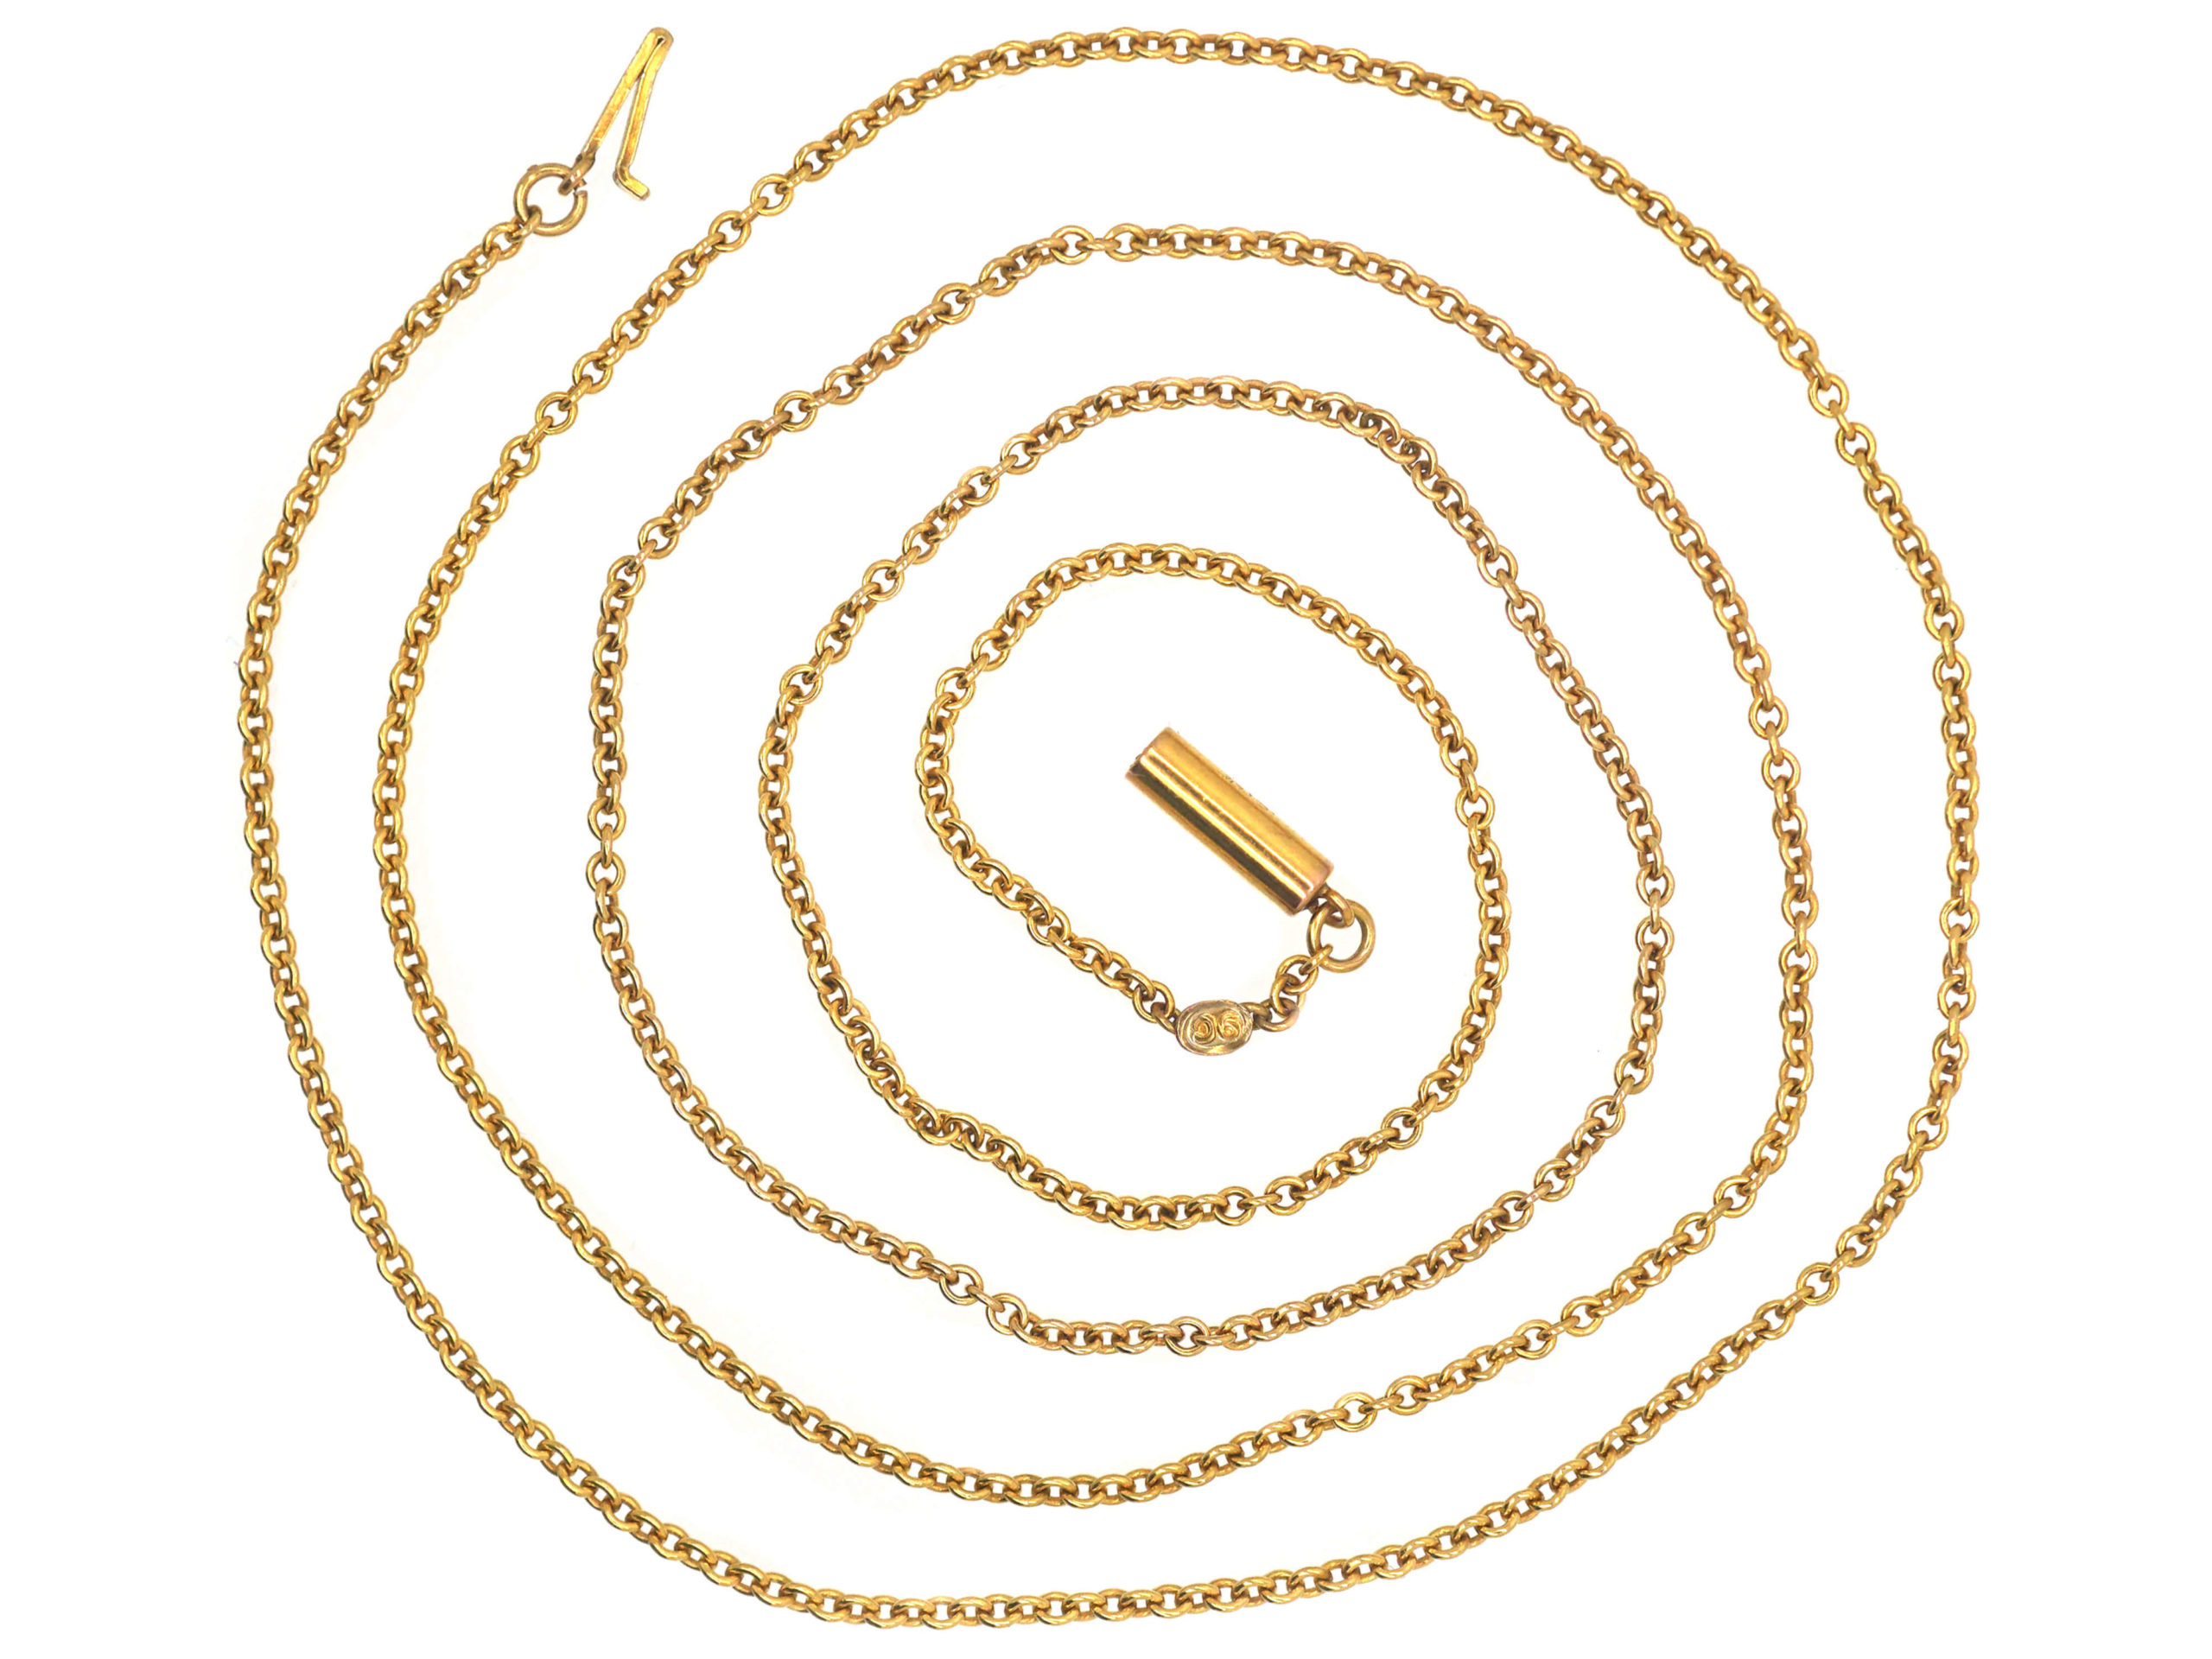 Edwardian 9ct Yellow Gold Trace Link Chain